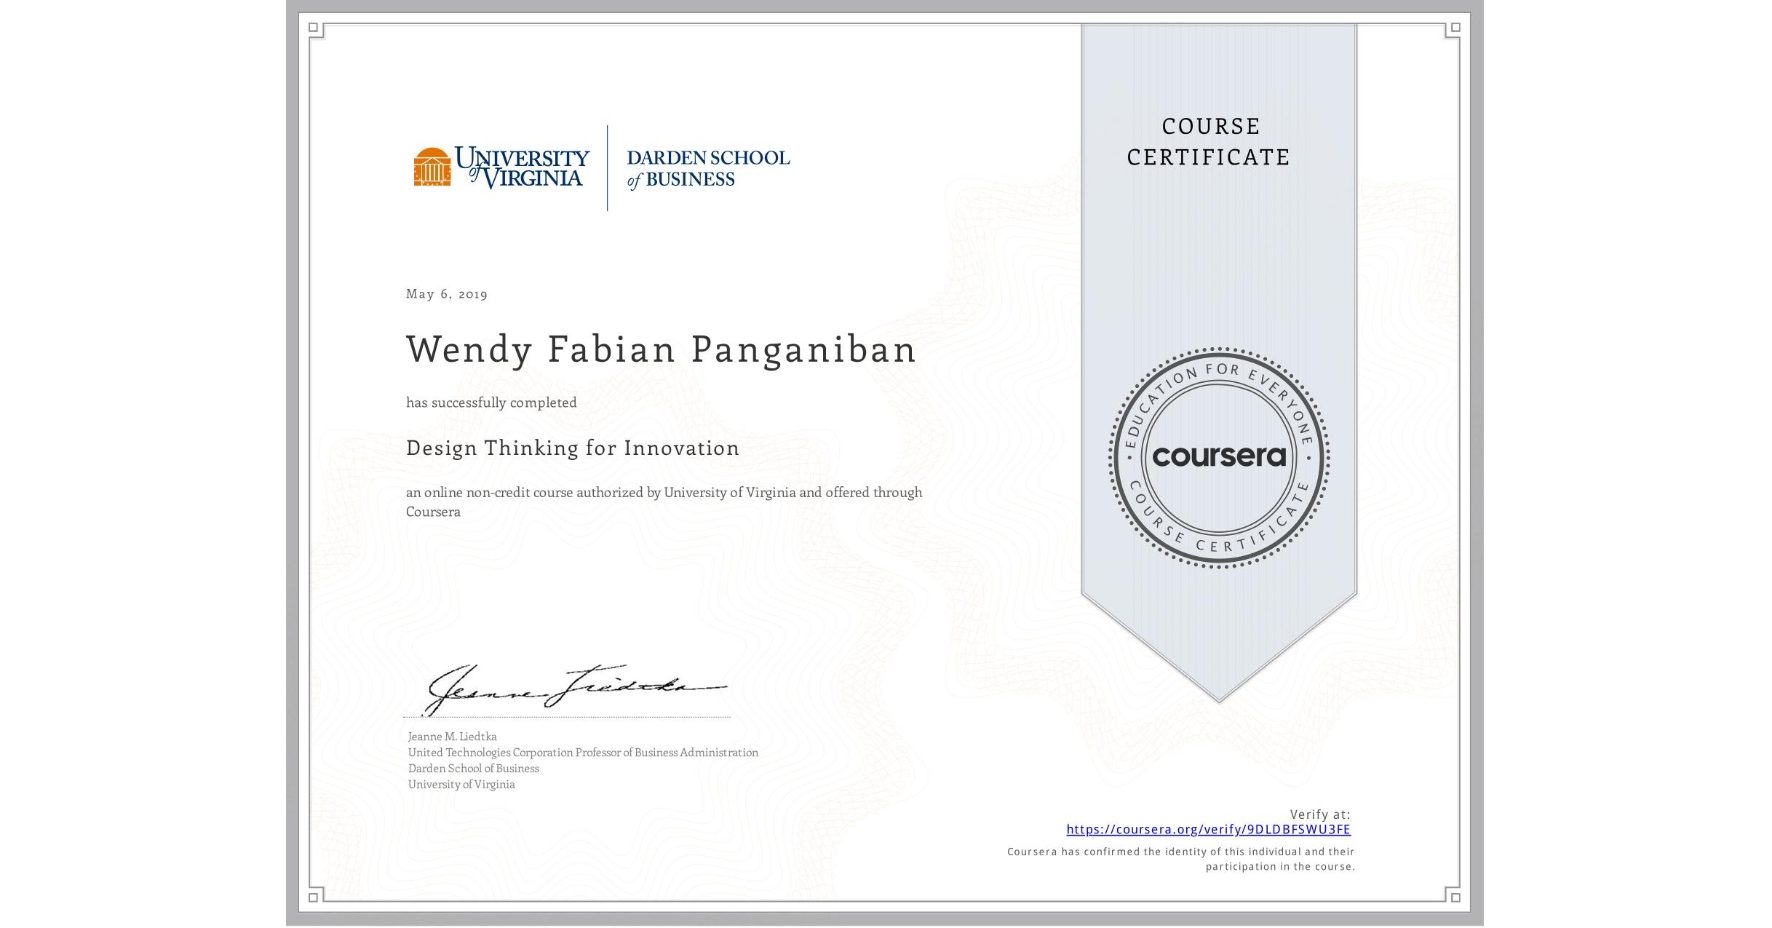 View certificate for Wendy Fabian Panganiban, Design Thinking for Innovation, an online non-credit course authorized by University of Virginia and offered through Coursera